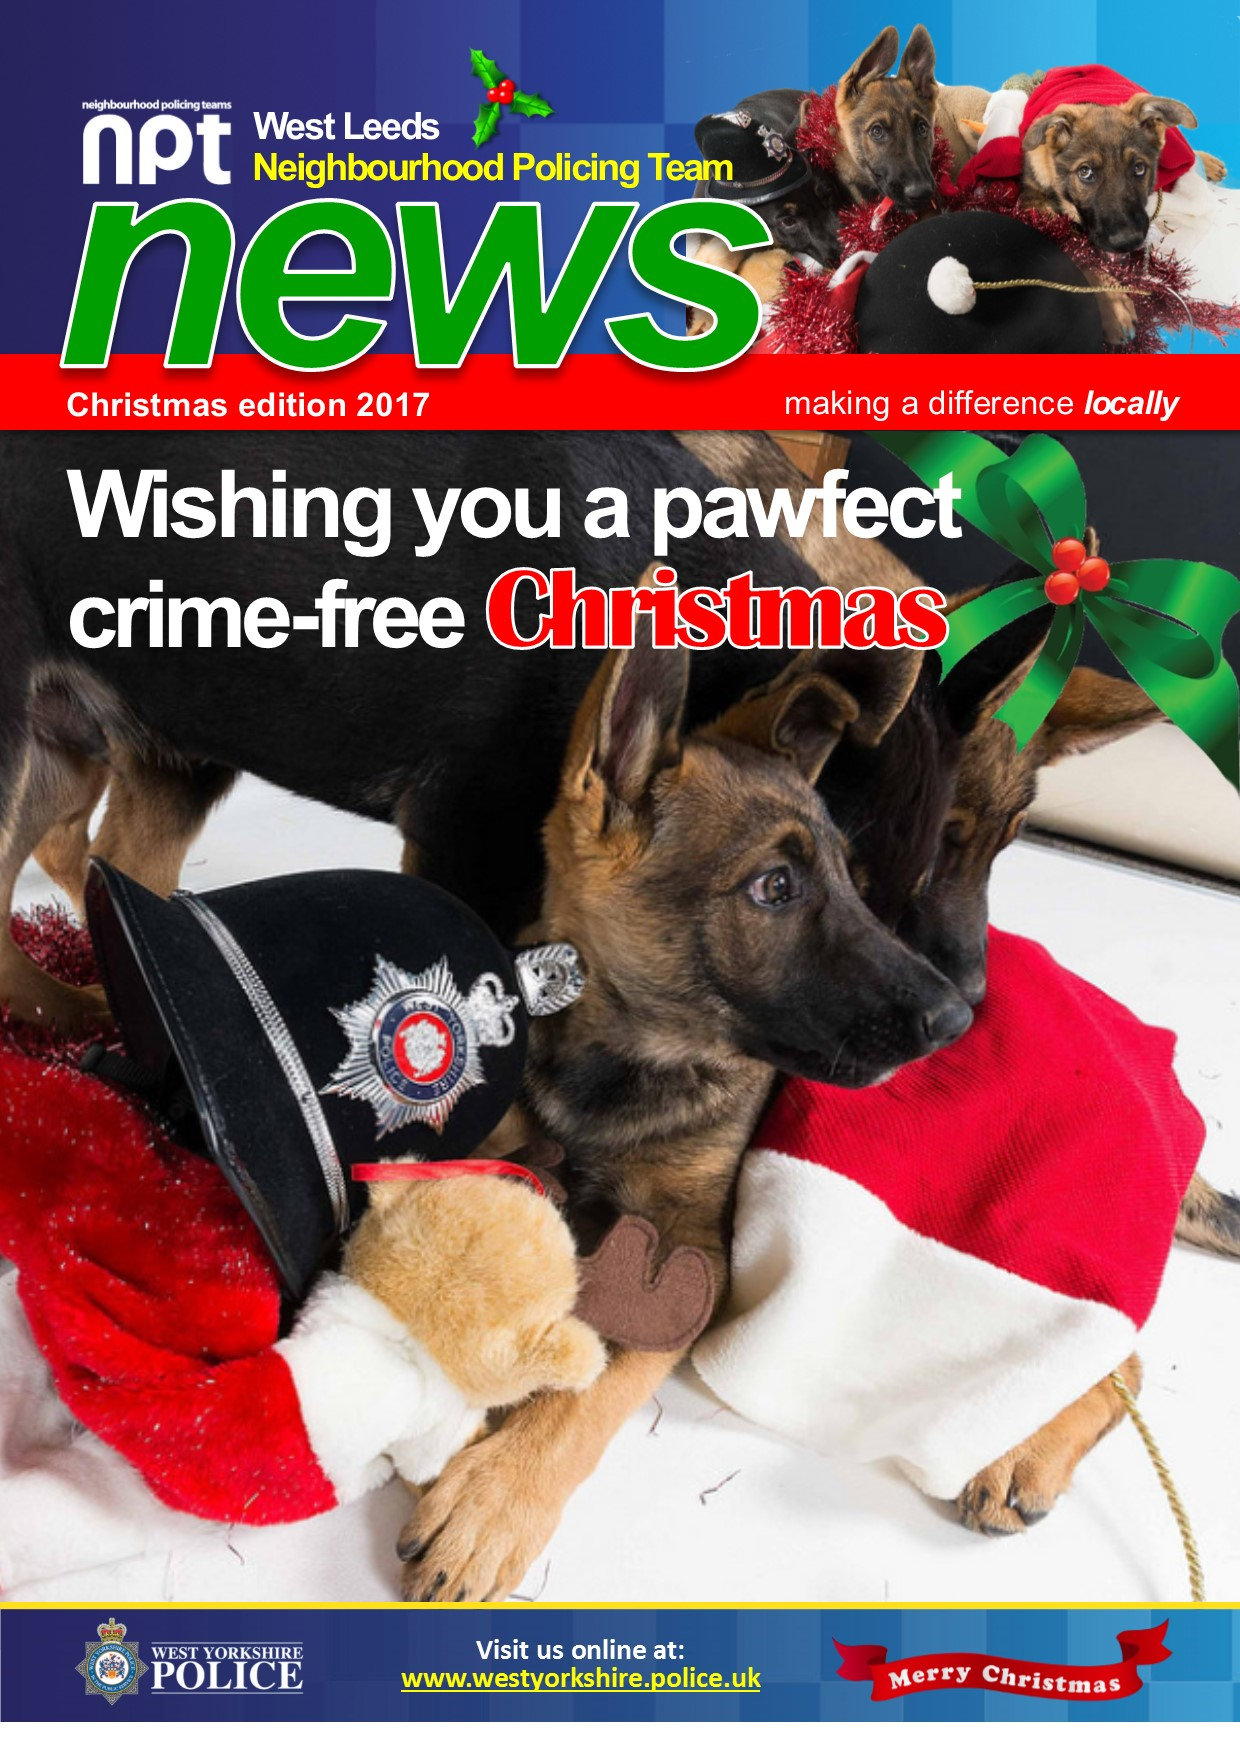 Our festive newsletter is out now!